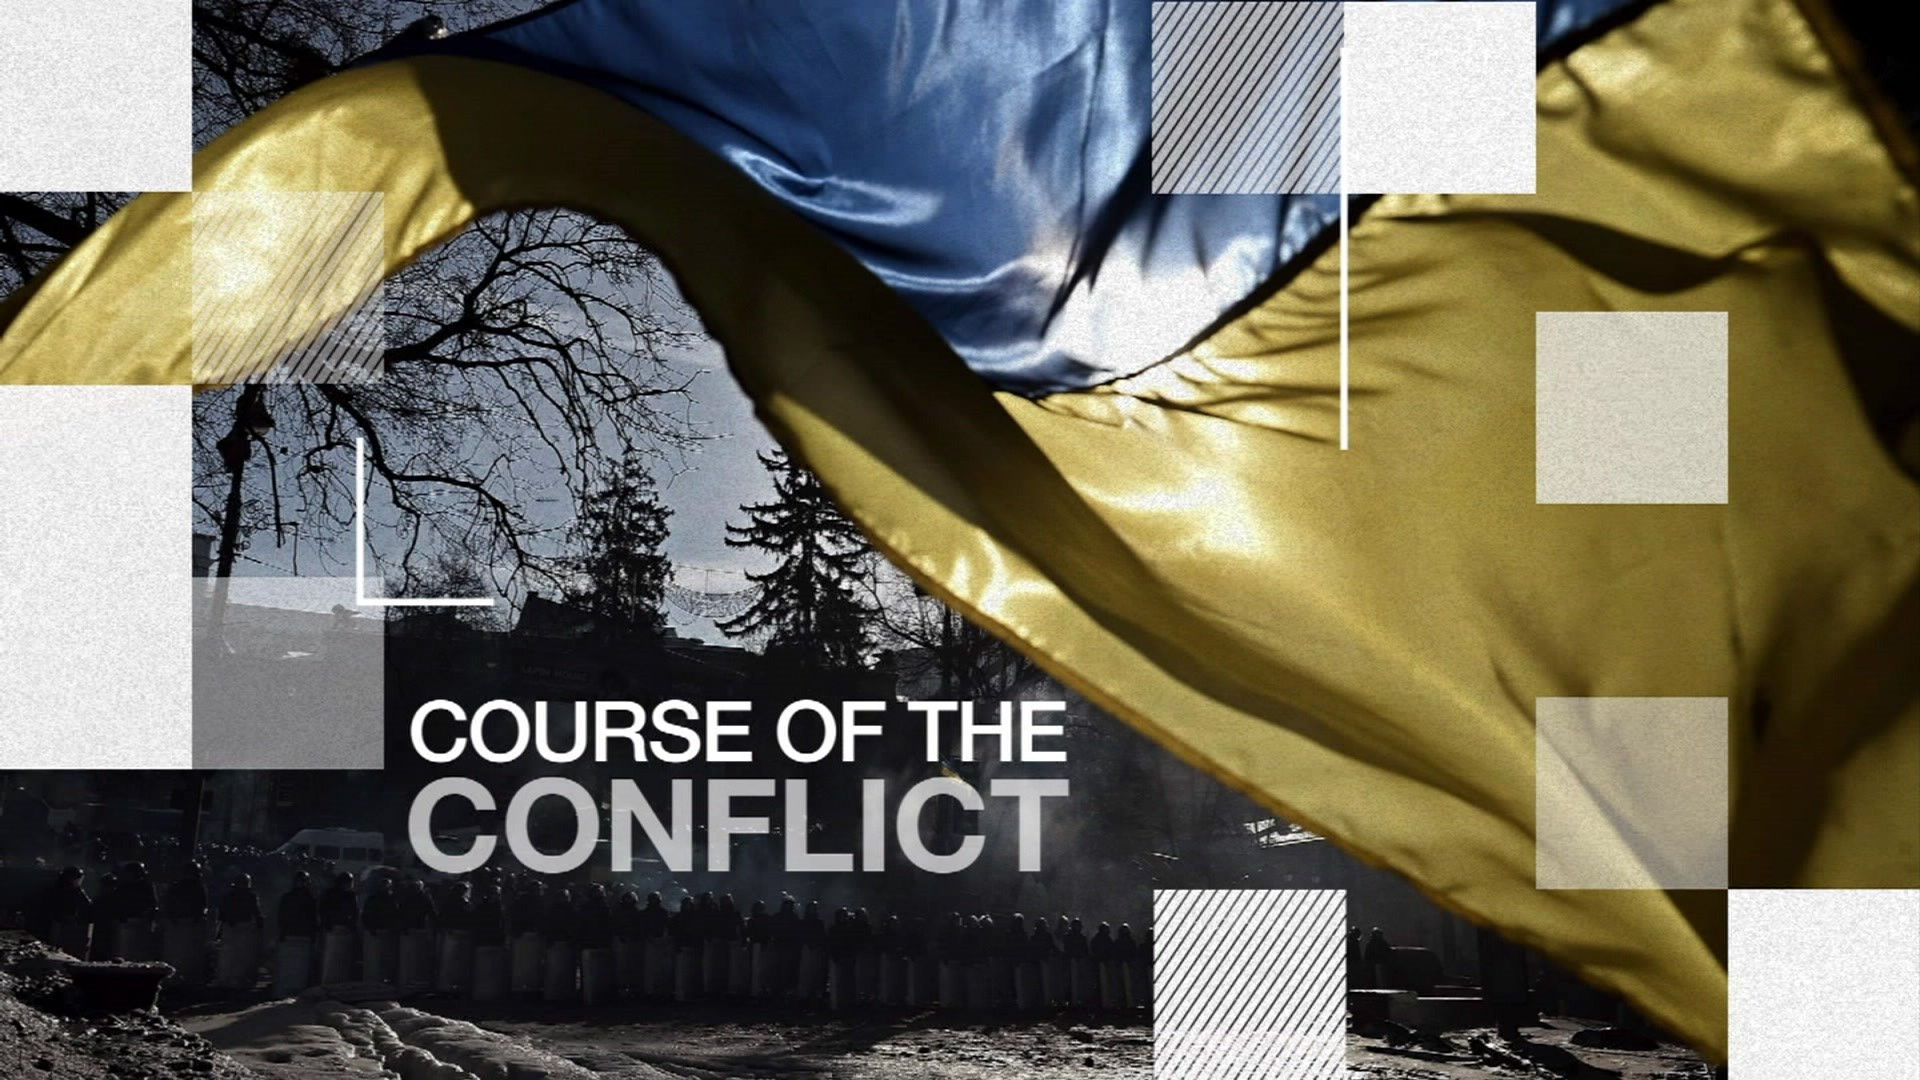 Ukraine conflict graphic